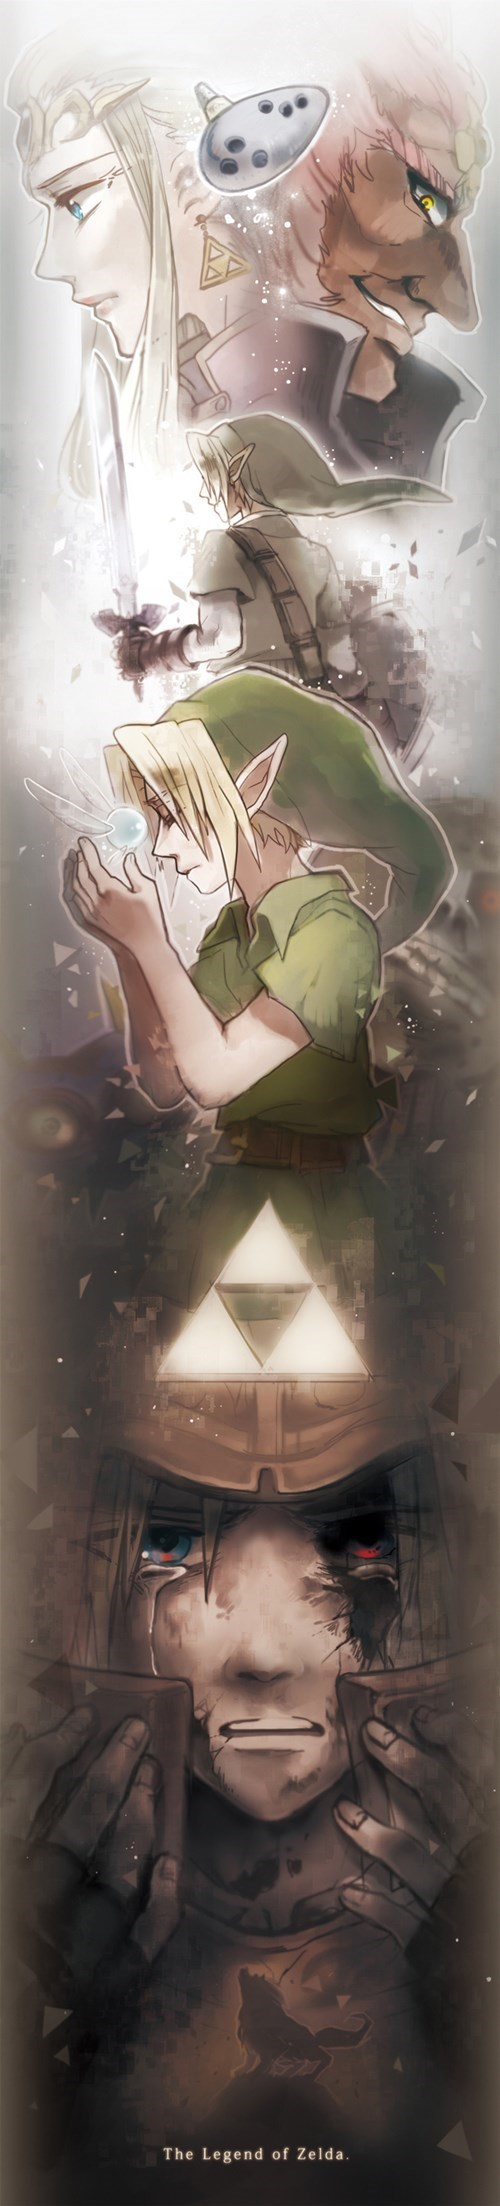 Fan Art link zelda - 8248178688